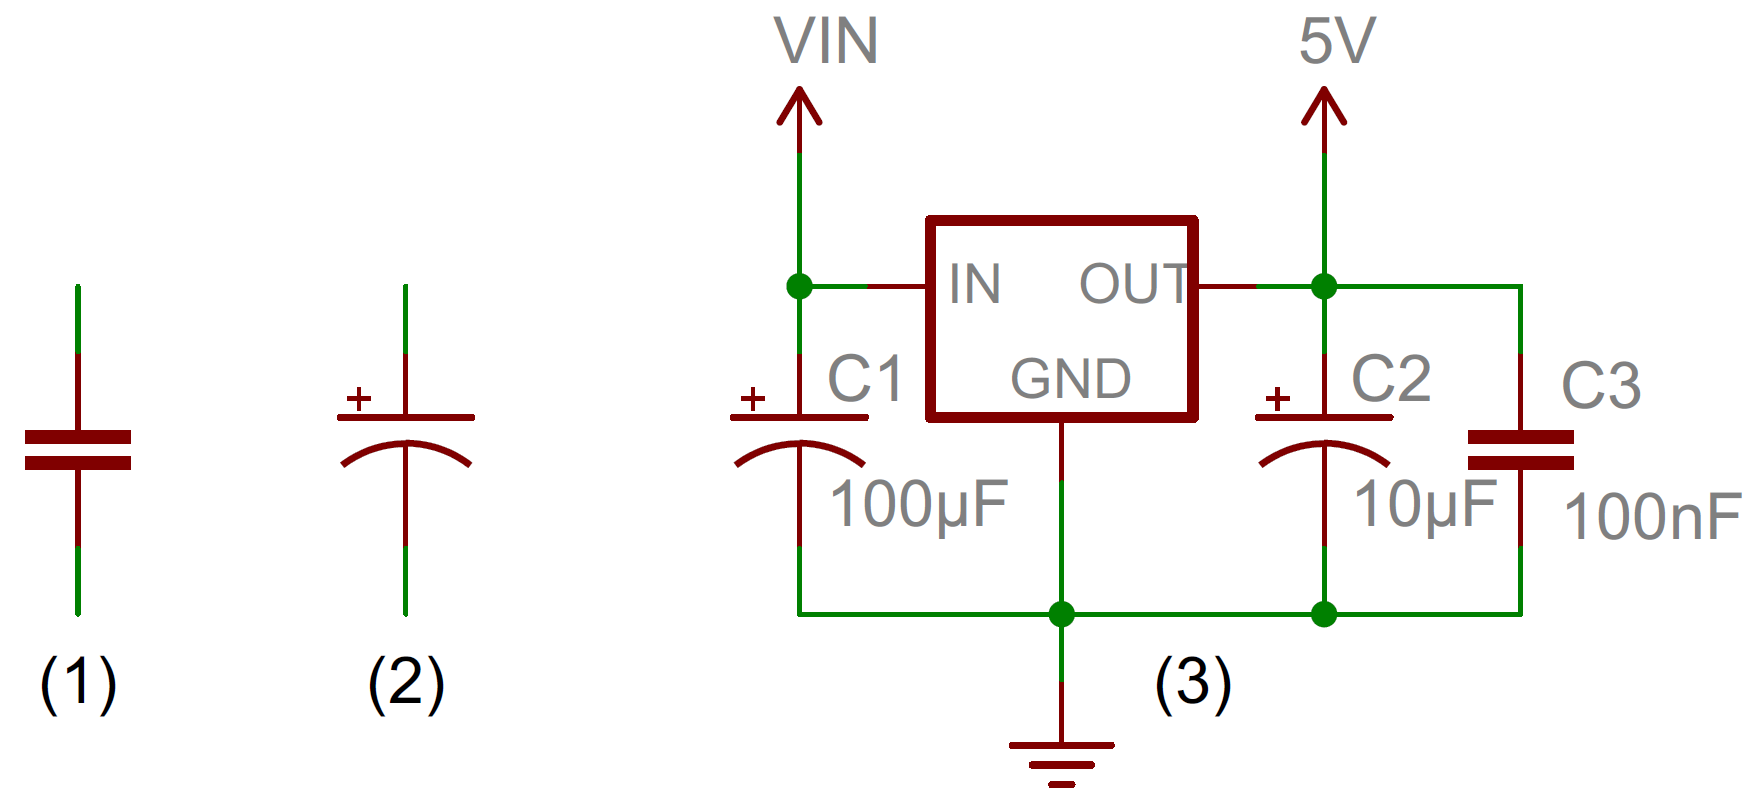 Capacitors Low Pass Filter Circuit Diagram Capacitor Symbols